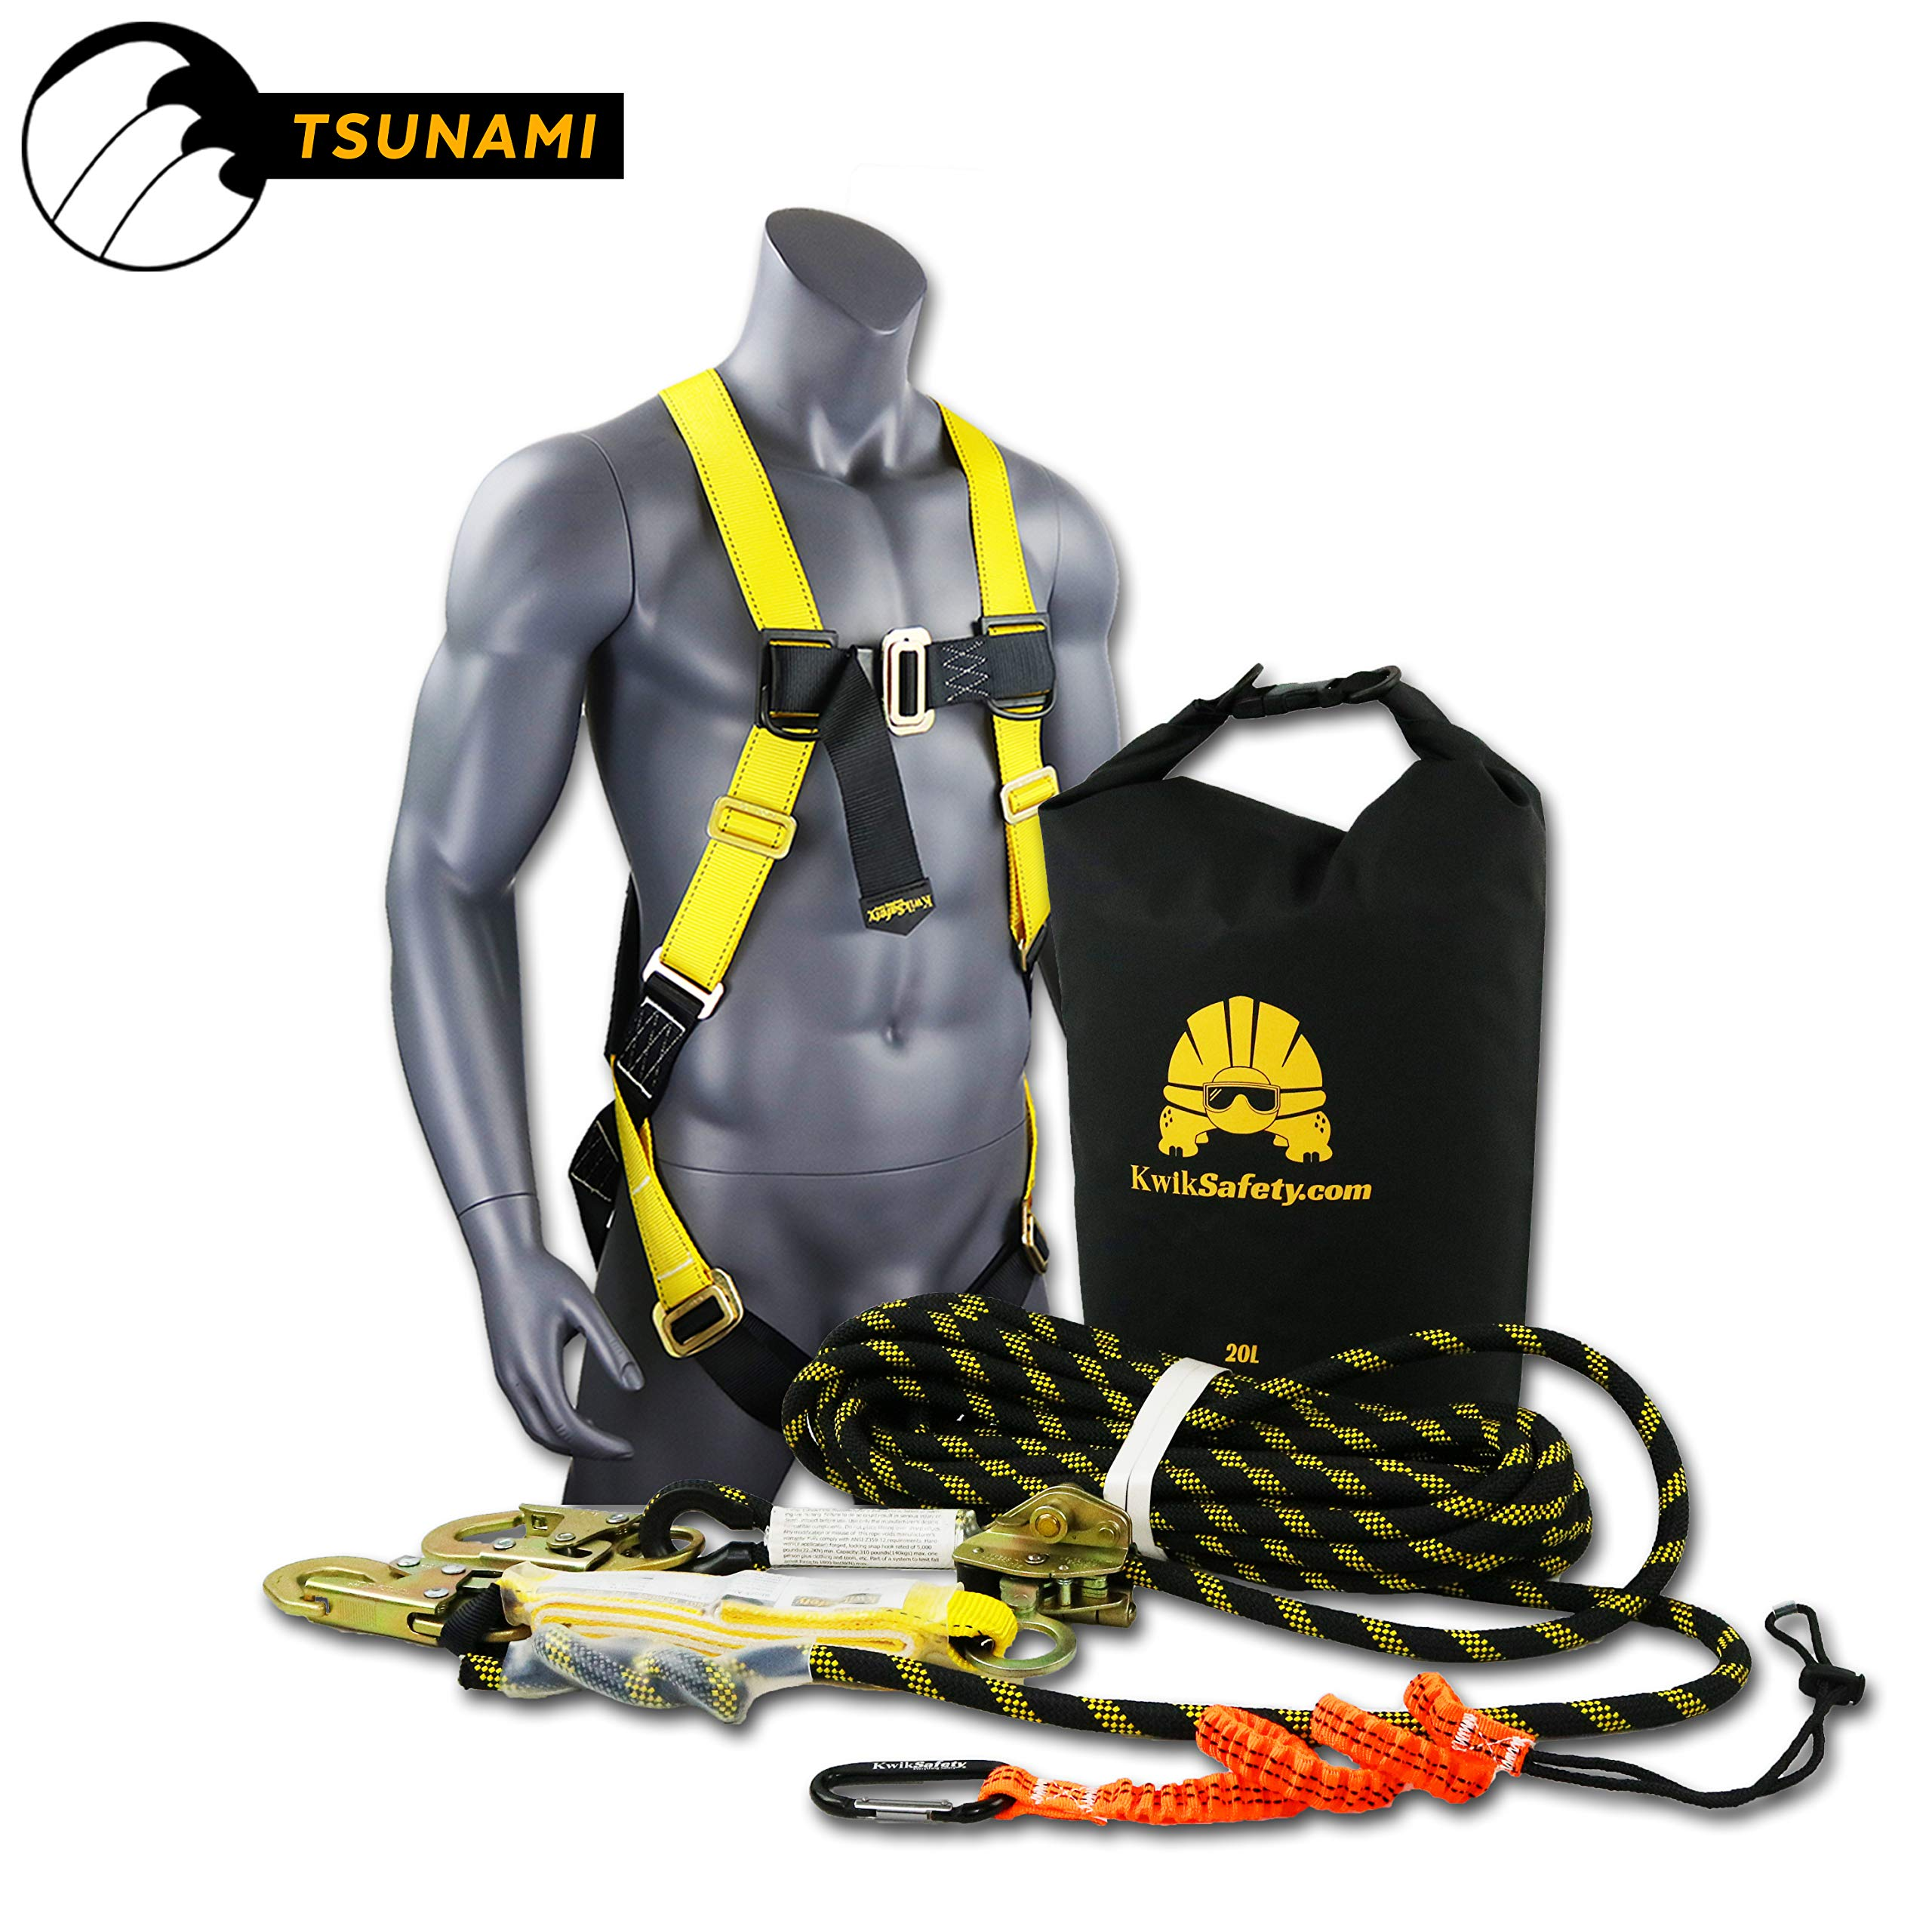 KwikSafety (Charlotte, NC) TSUNAMI Kit Vertical Lifeline Assembly 50 ft. Rope Snap hook Integrated Shock Absorber Dry Bag for Gear/Equipment | ANSI OSHA Personal roofing Fall Protection Arrest System